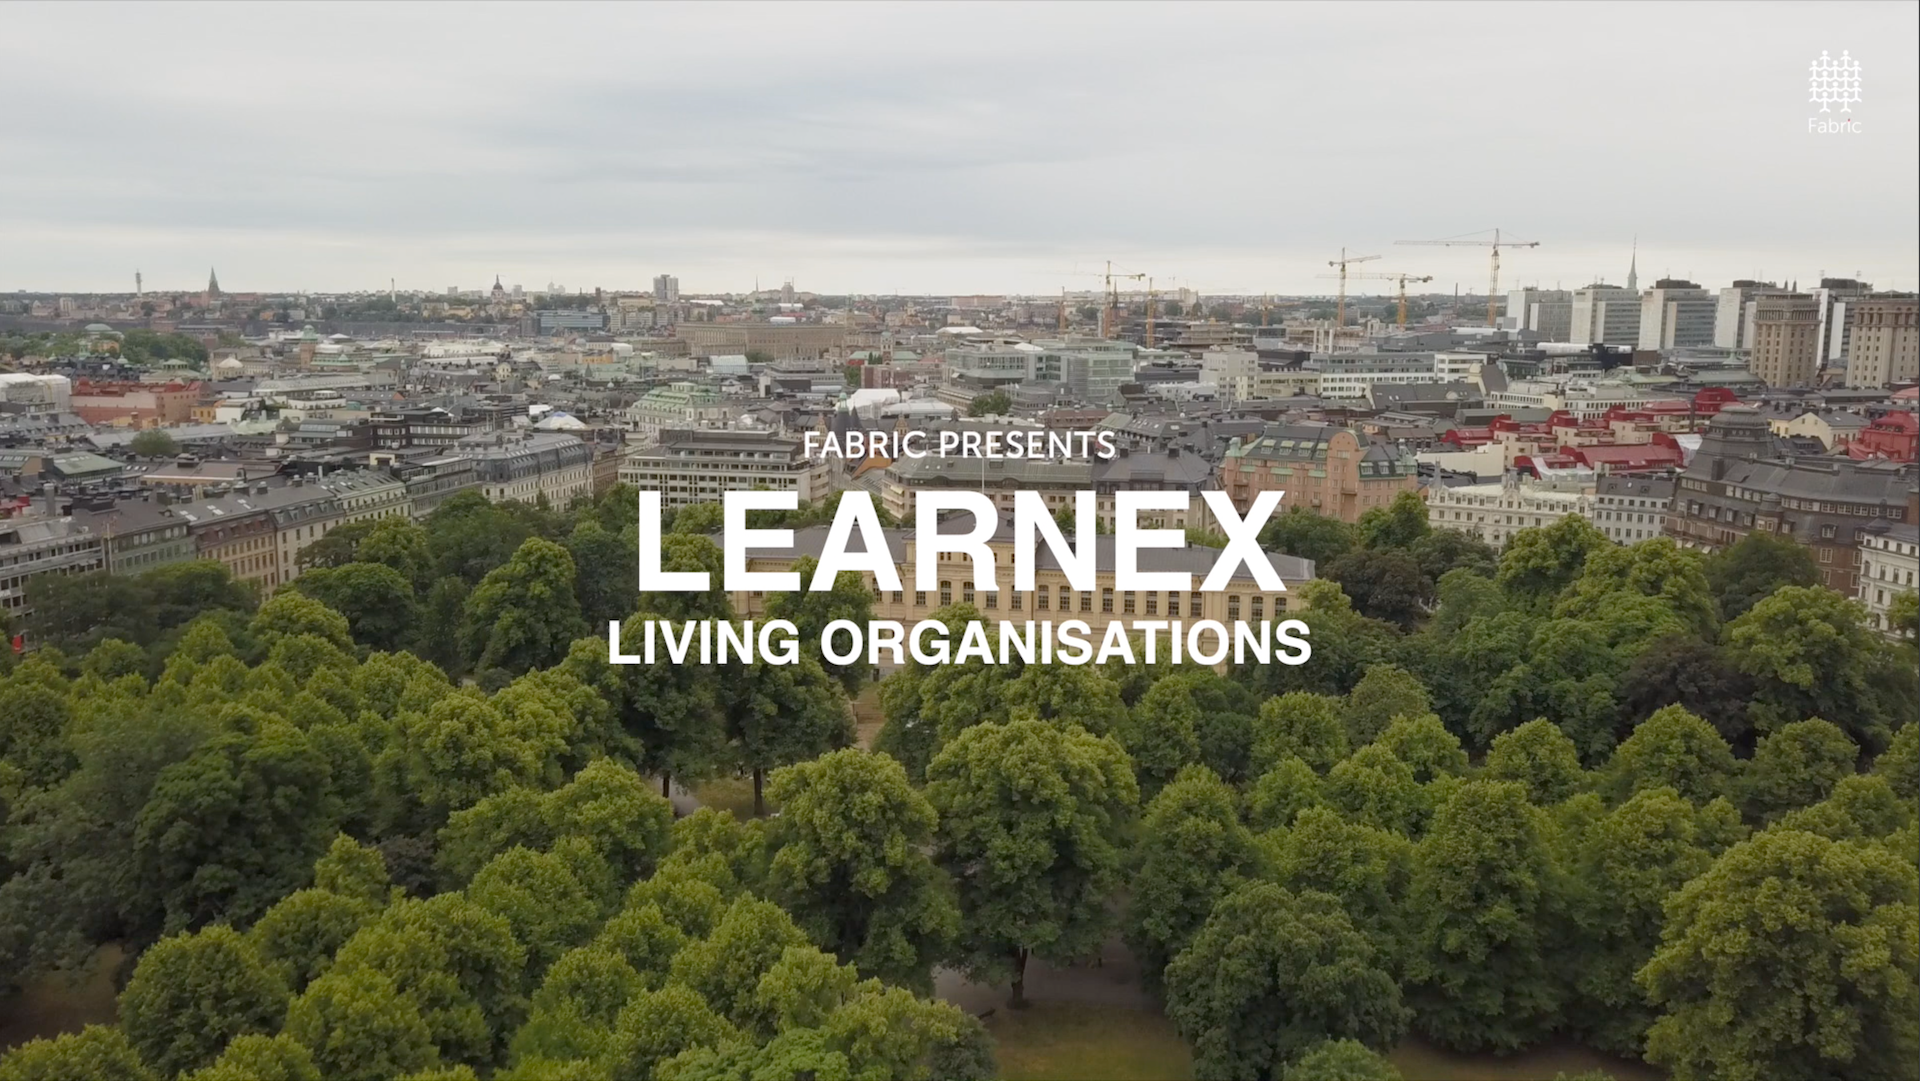 LearnEX by Fabric